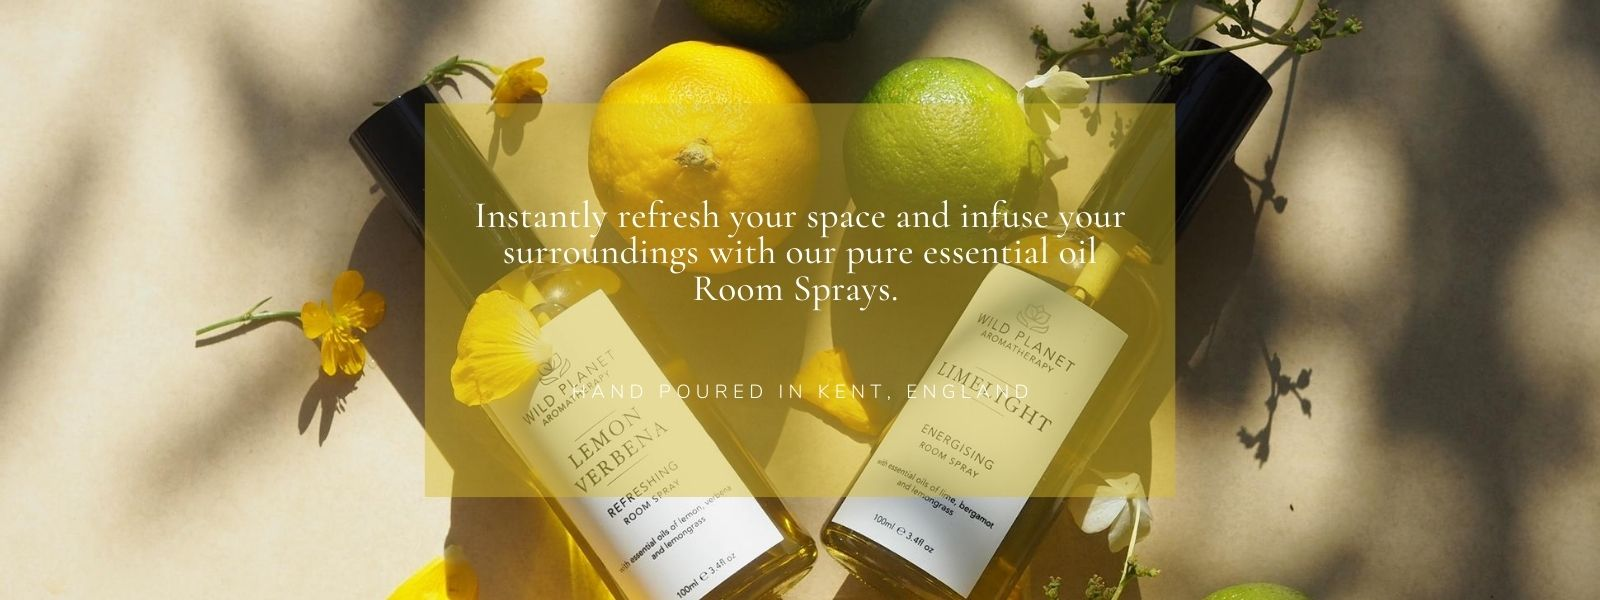 Lemon Verbena Room Spray and Limelight Room Spray next to fresh lemons and limes and flowersby Wild Planet Aromatherapy